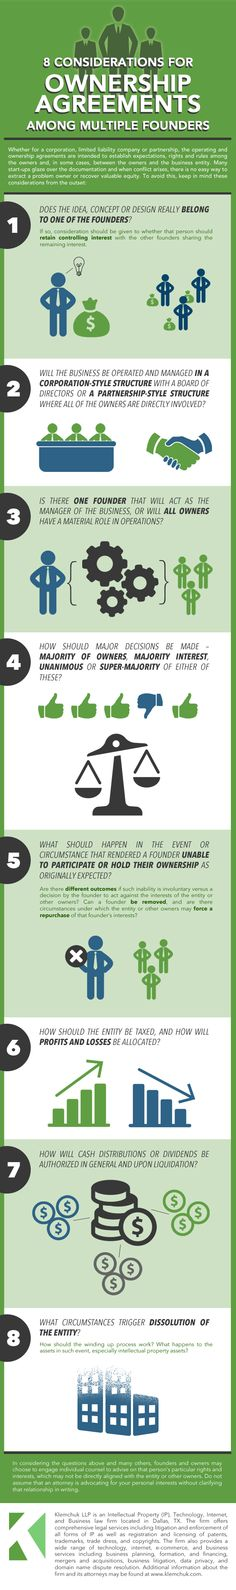 Importance of Ownership Agreements. Infographic content authored by the intellectual property law firm of Klemchuk LLP.